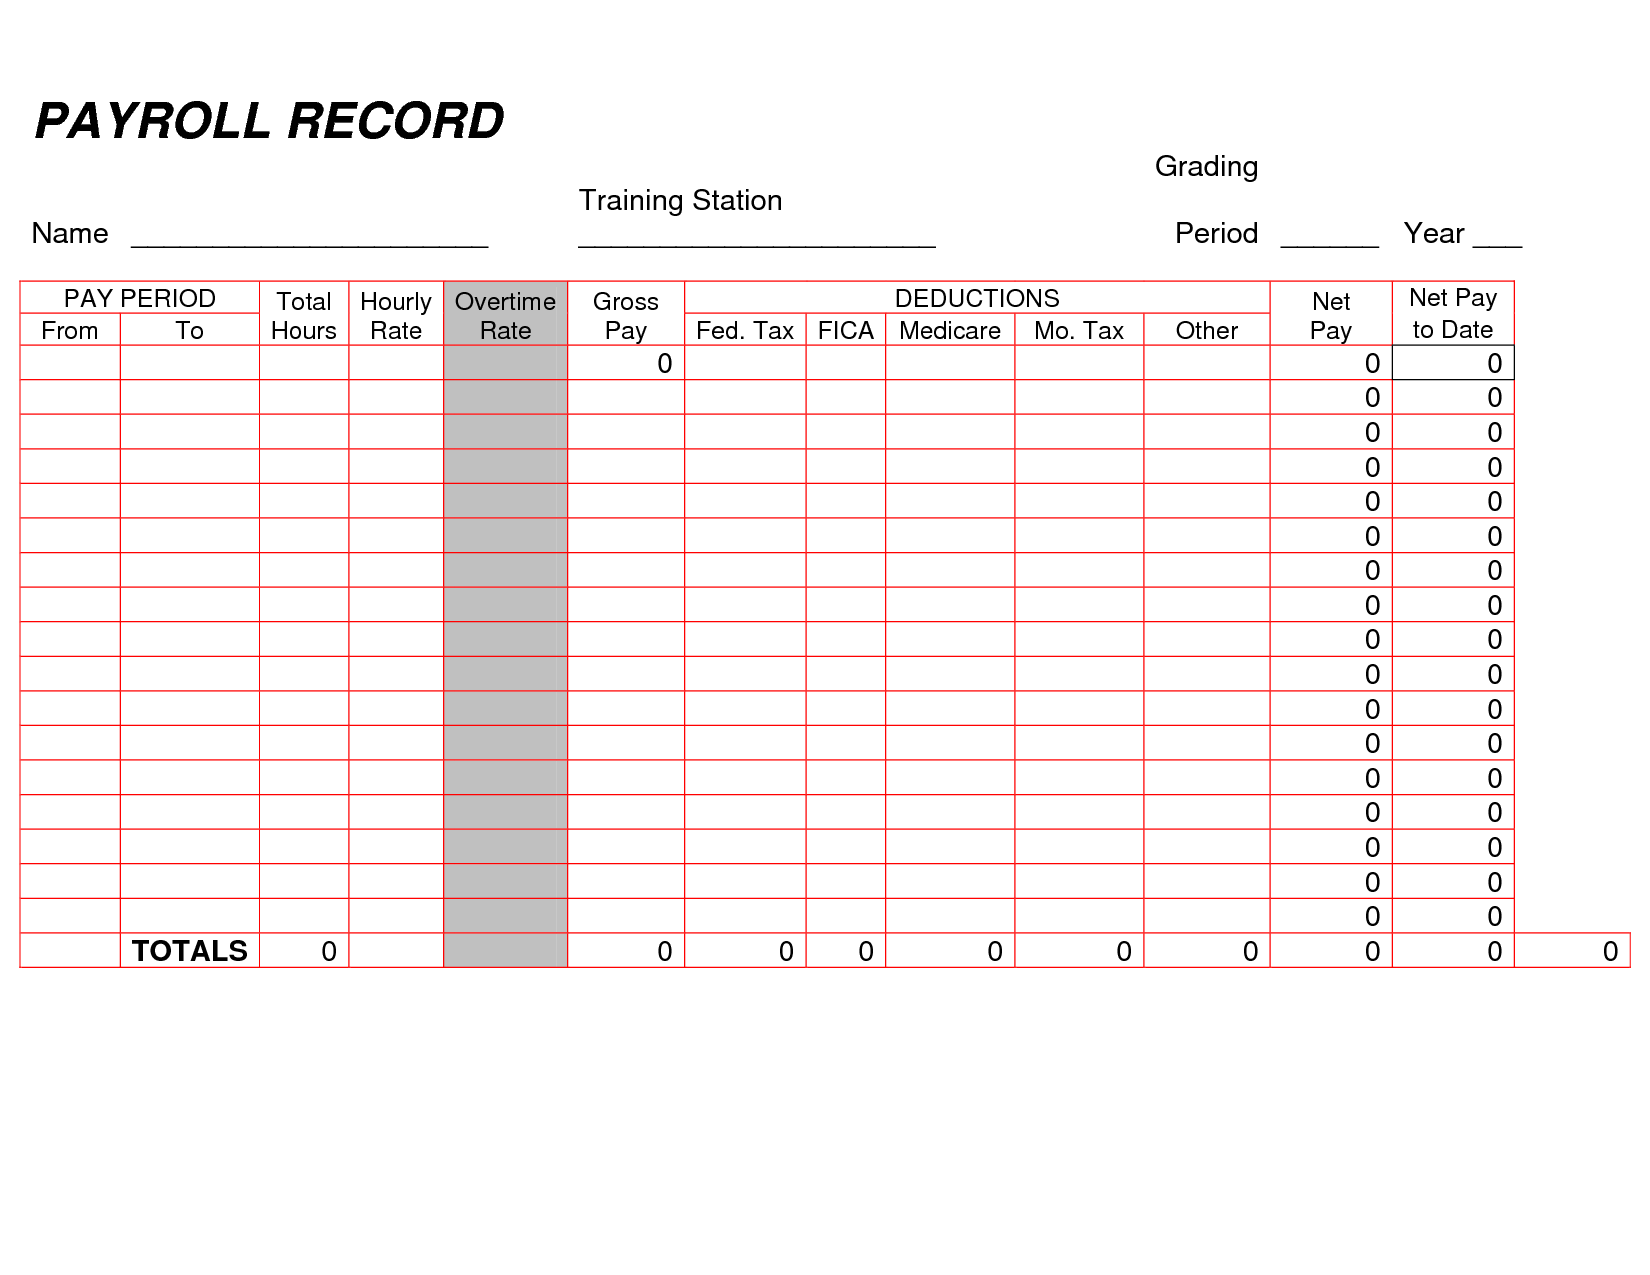 Bill Ledger Template and Printable Payroll Ledger Blank Payroll Record Pdf Things to